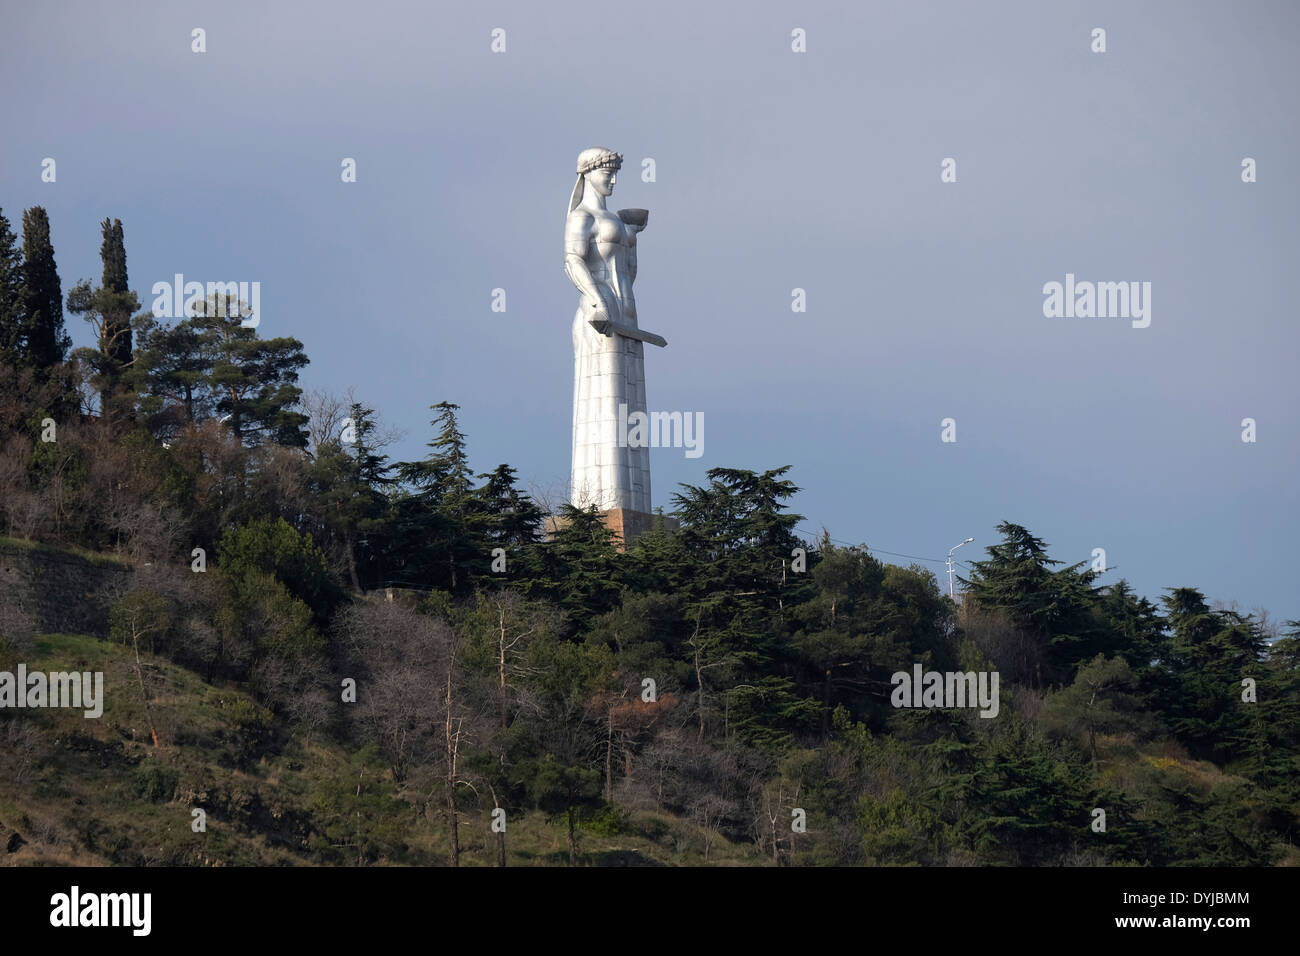 The 23-meter-high statue of Kartlis Deda (Mother Georgia) holding a sword for her enemies in her right hand and a bowl of wine to greet friends in her left overlooking the city of Tbilisi the capital of  Republic of Georgia - Stock Image